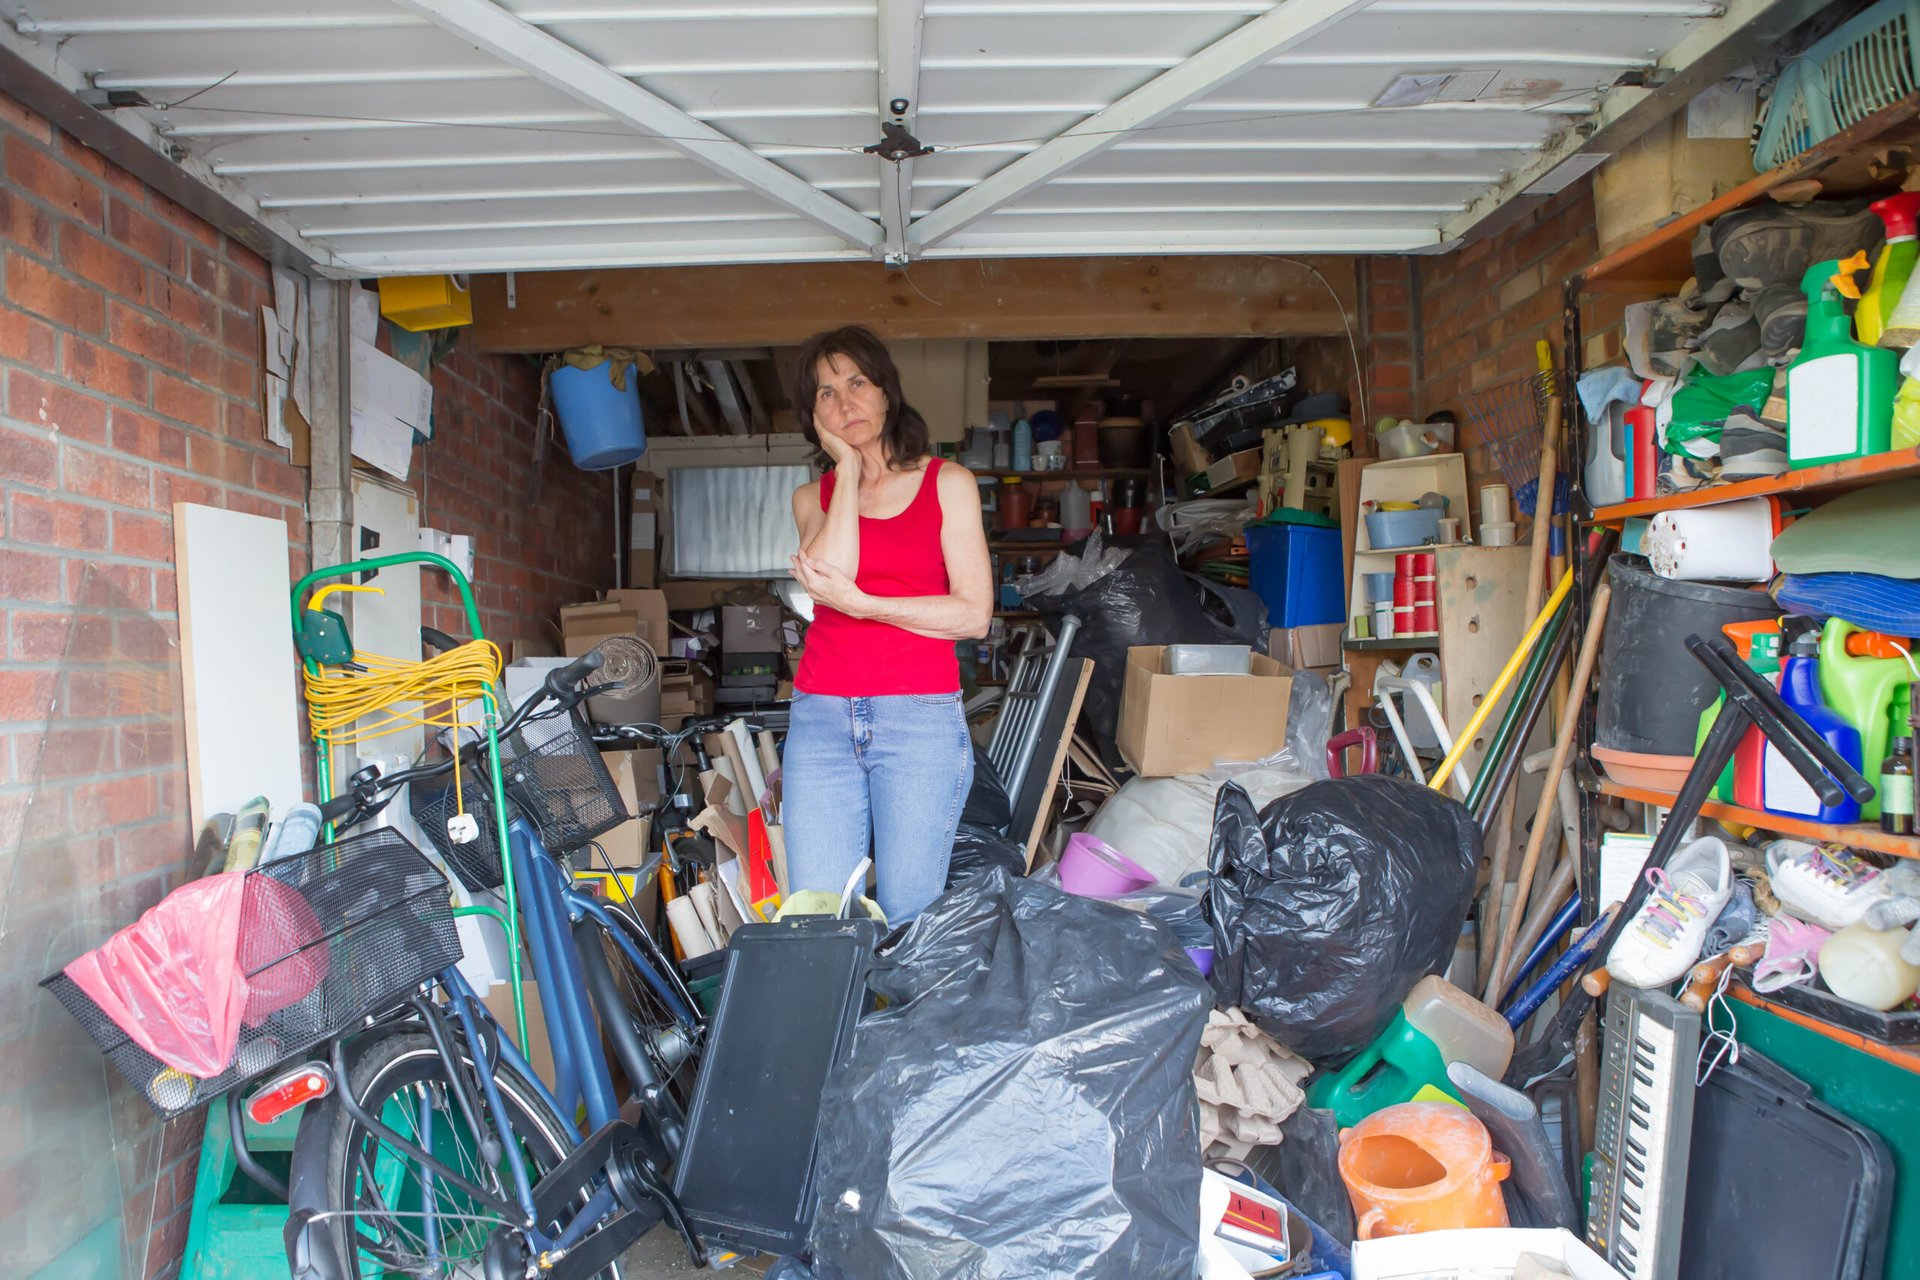 Upset woman in a cluttered garage